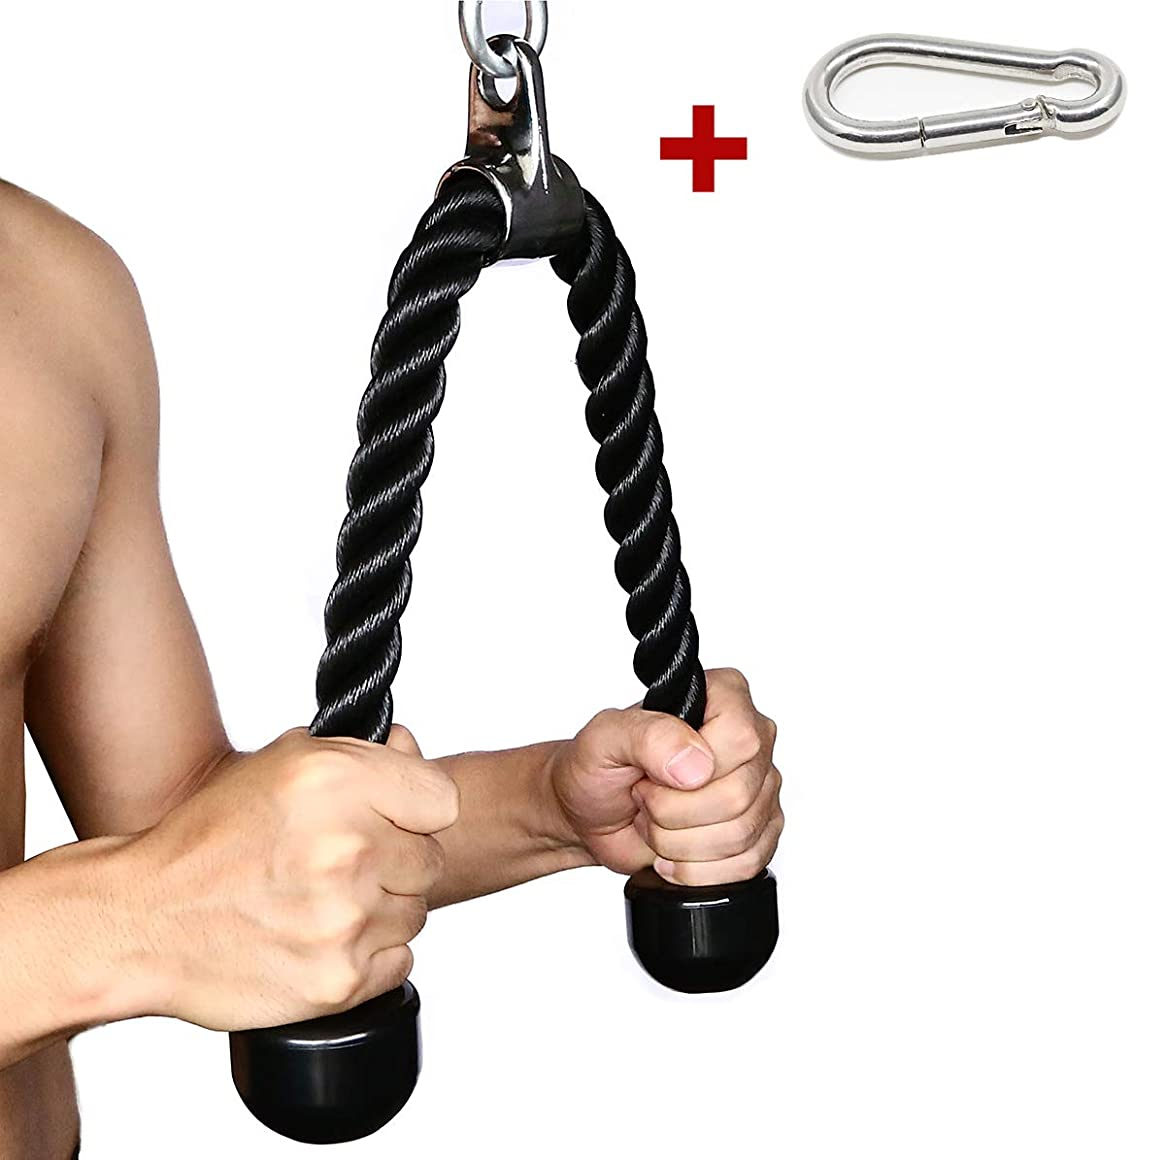 Tricep Rope 27 & 36 inches 2 Colors Fitness Attachment Cable Machine Pulldown Heavy Duty Coated Nylon Rope with Solid Rubber Ends